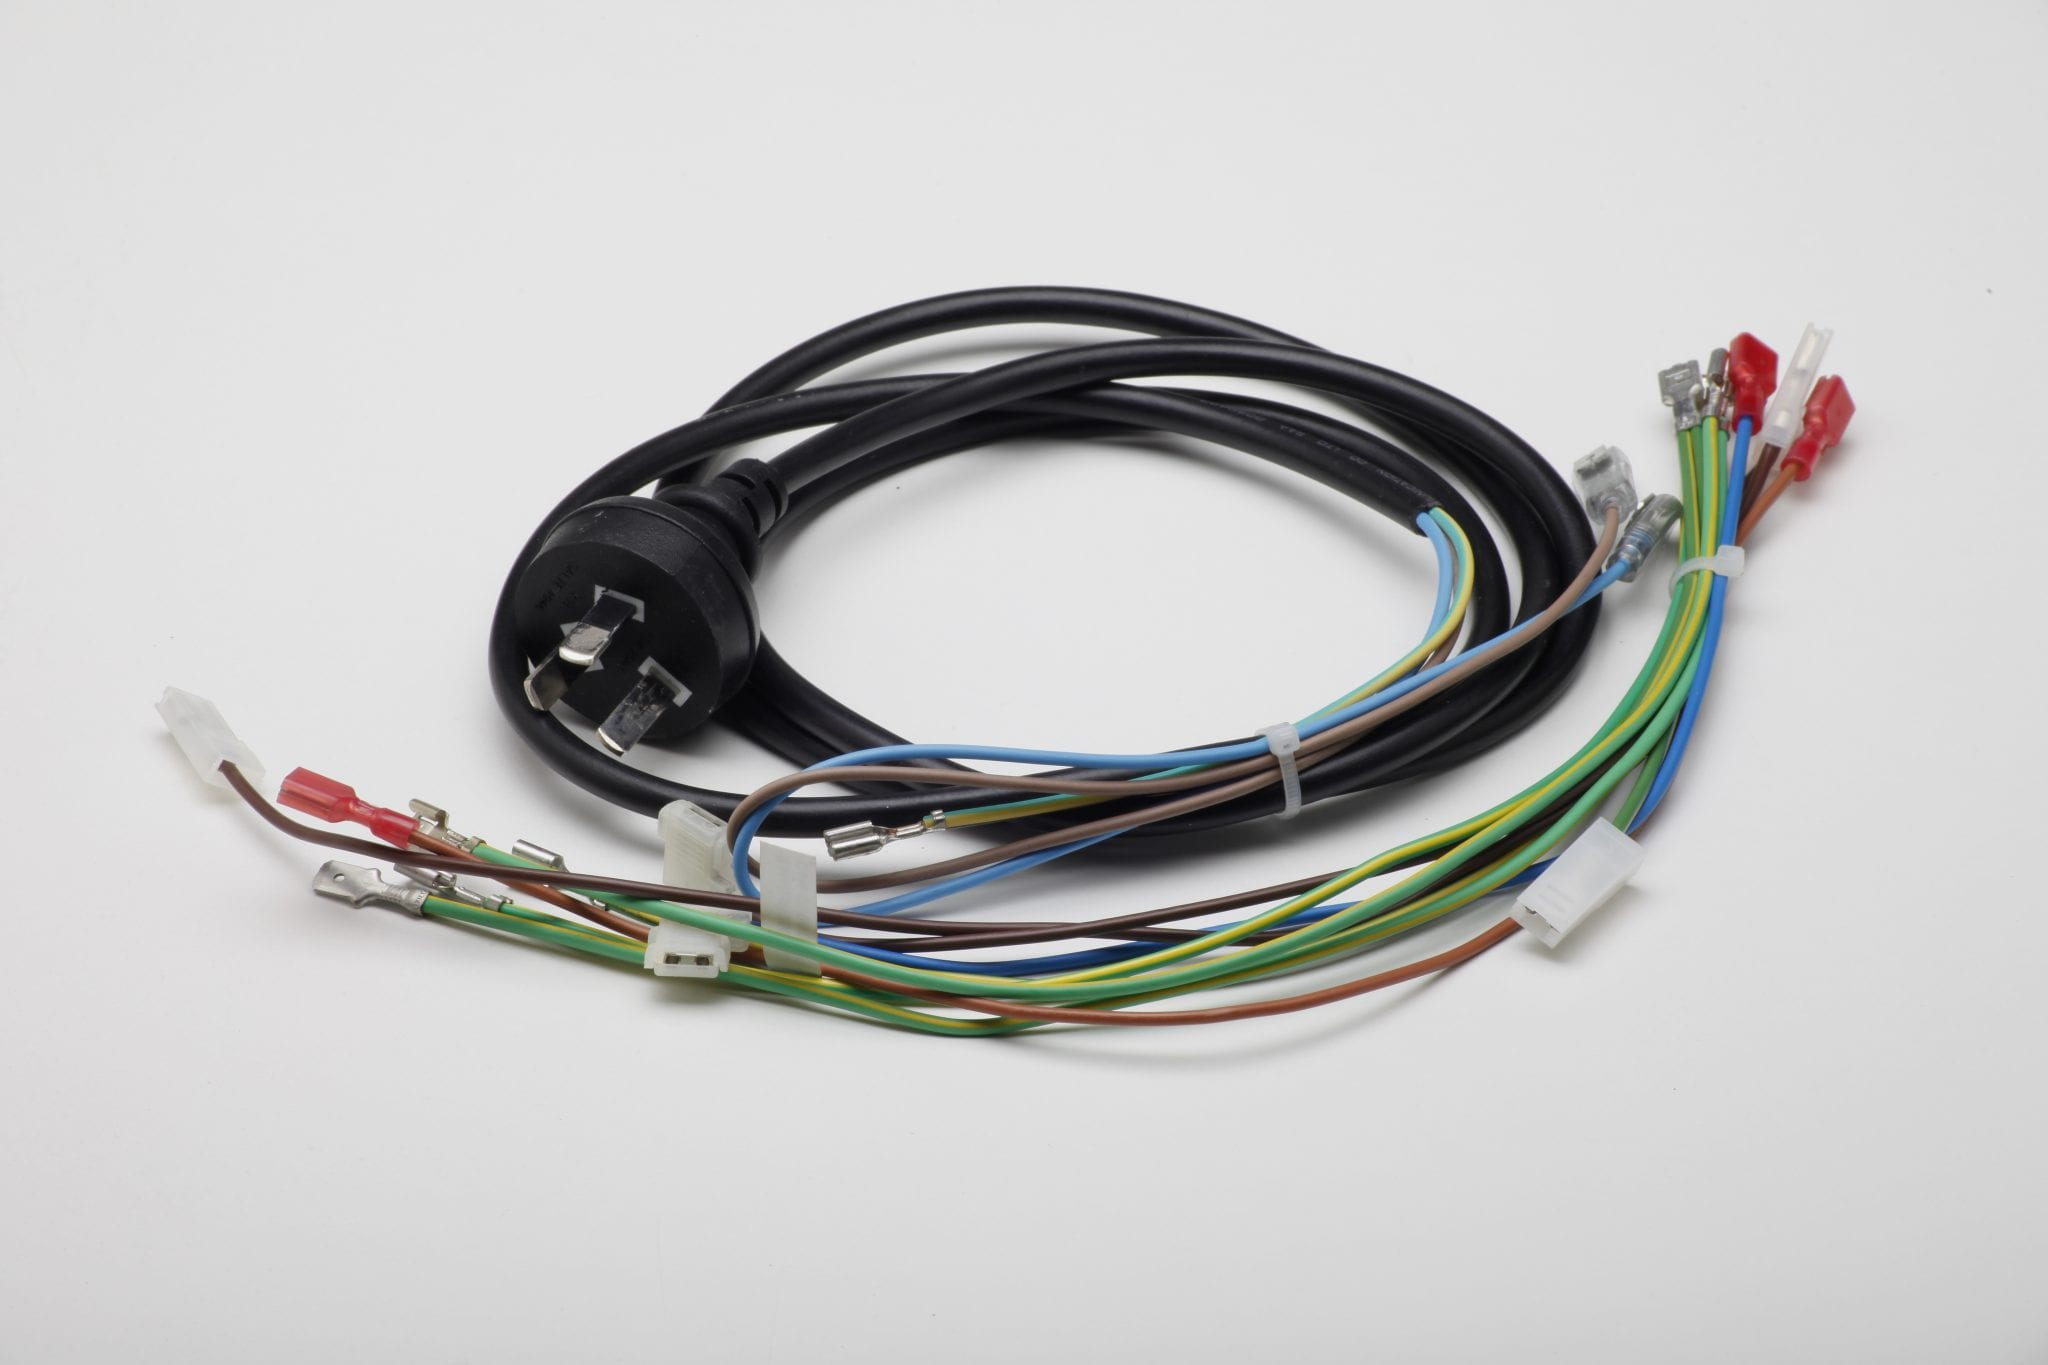 Wiring Loom Kit - A3 - Billi Australia Pty Ltd